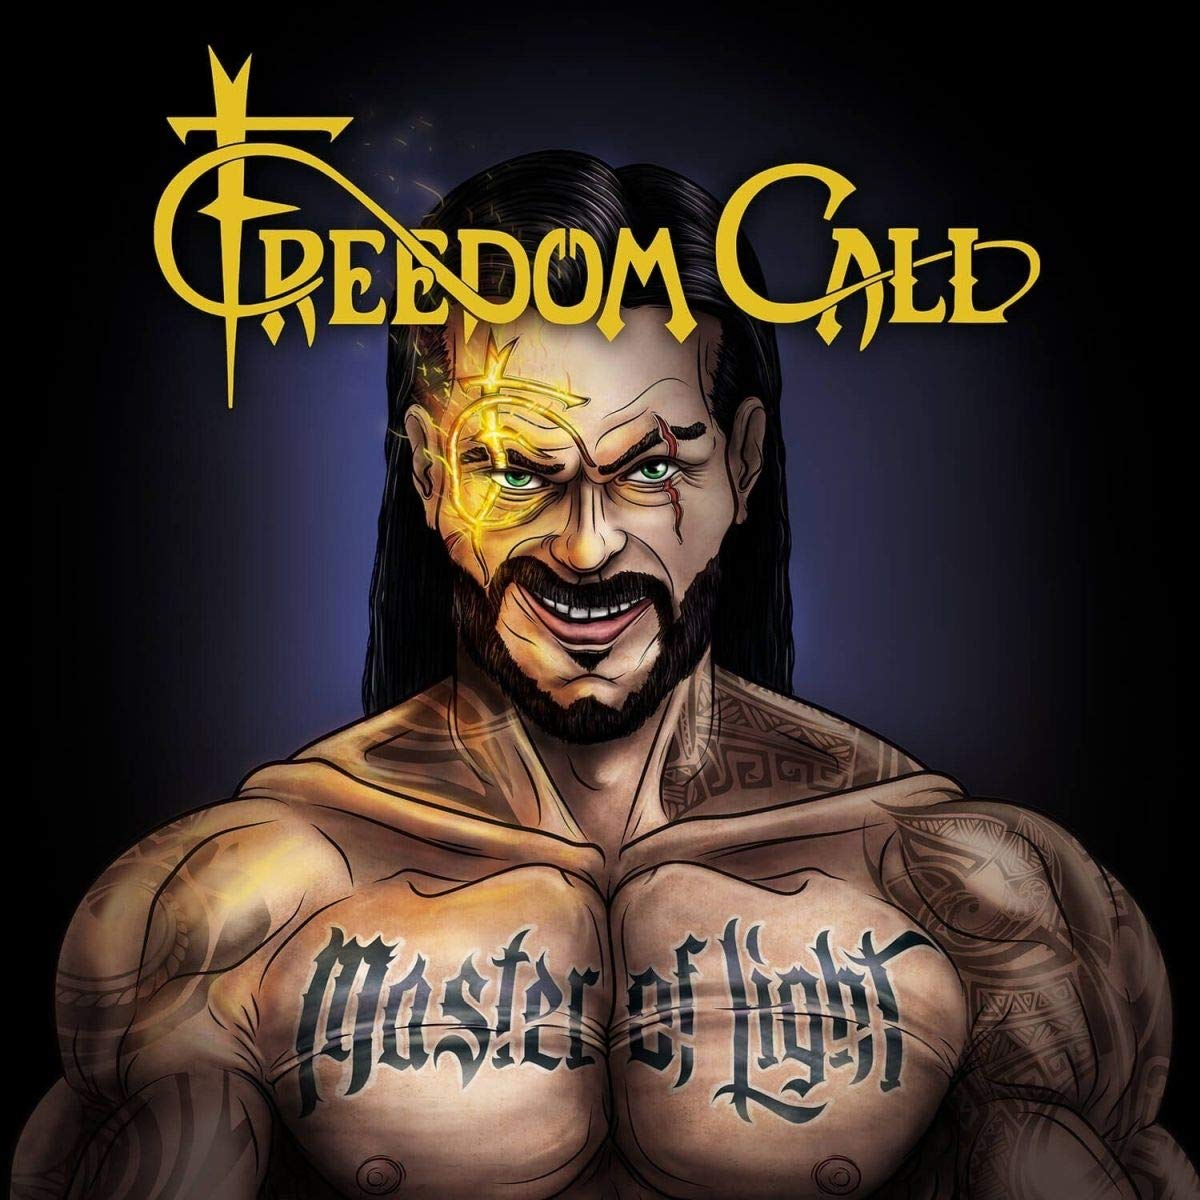 Freedom Call - Master Of Light (2016) [FLAC] Download